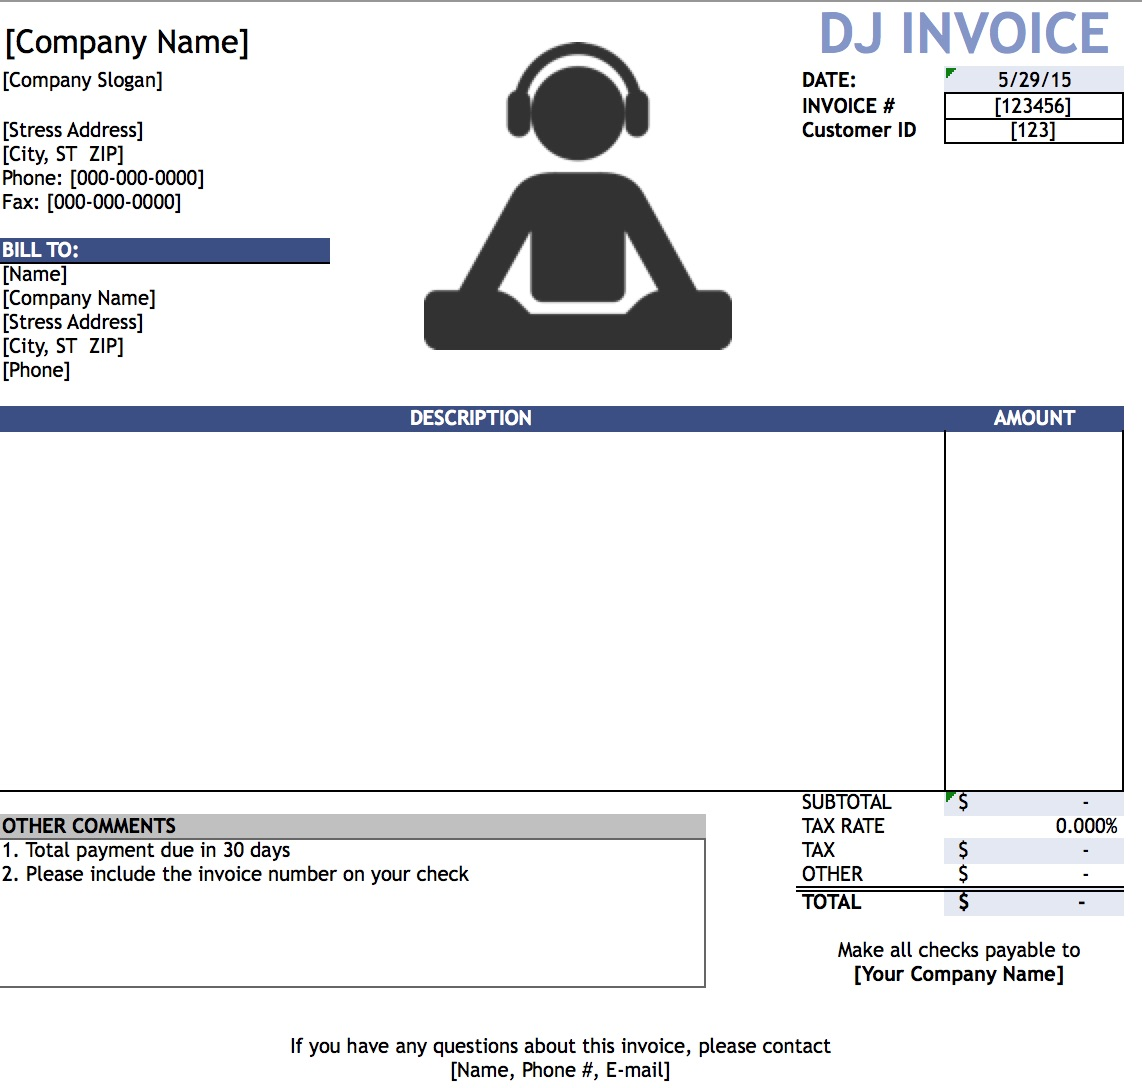 Free DJ Disc Jockey Invoice Template Excel PDF Word Doc - Free invoices download for service business